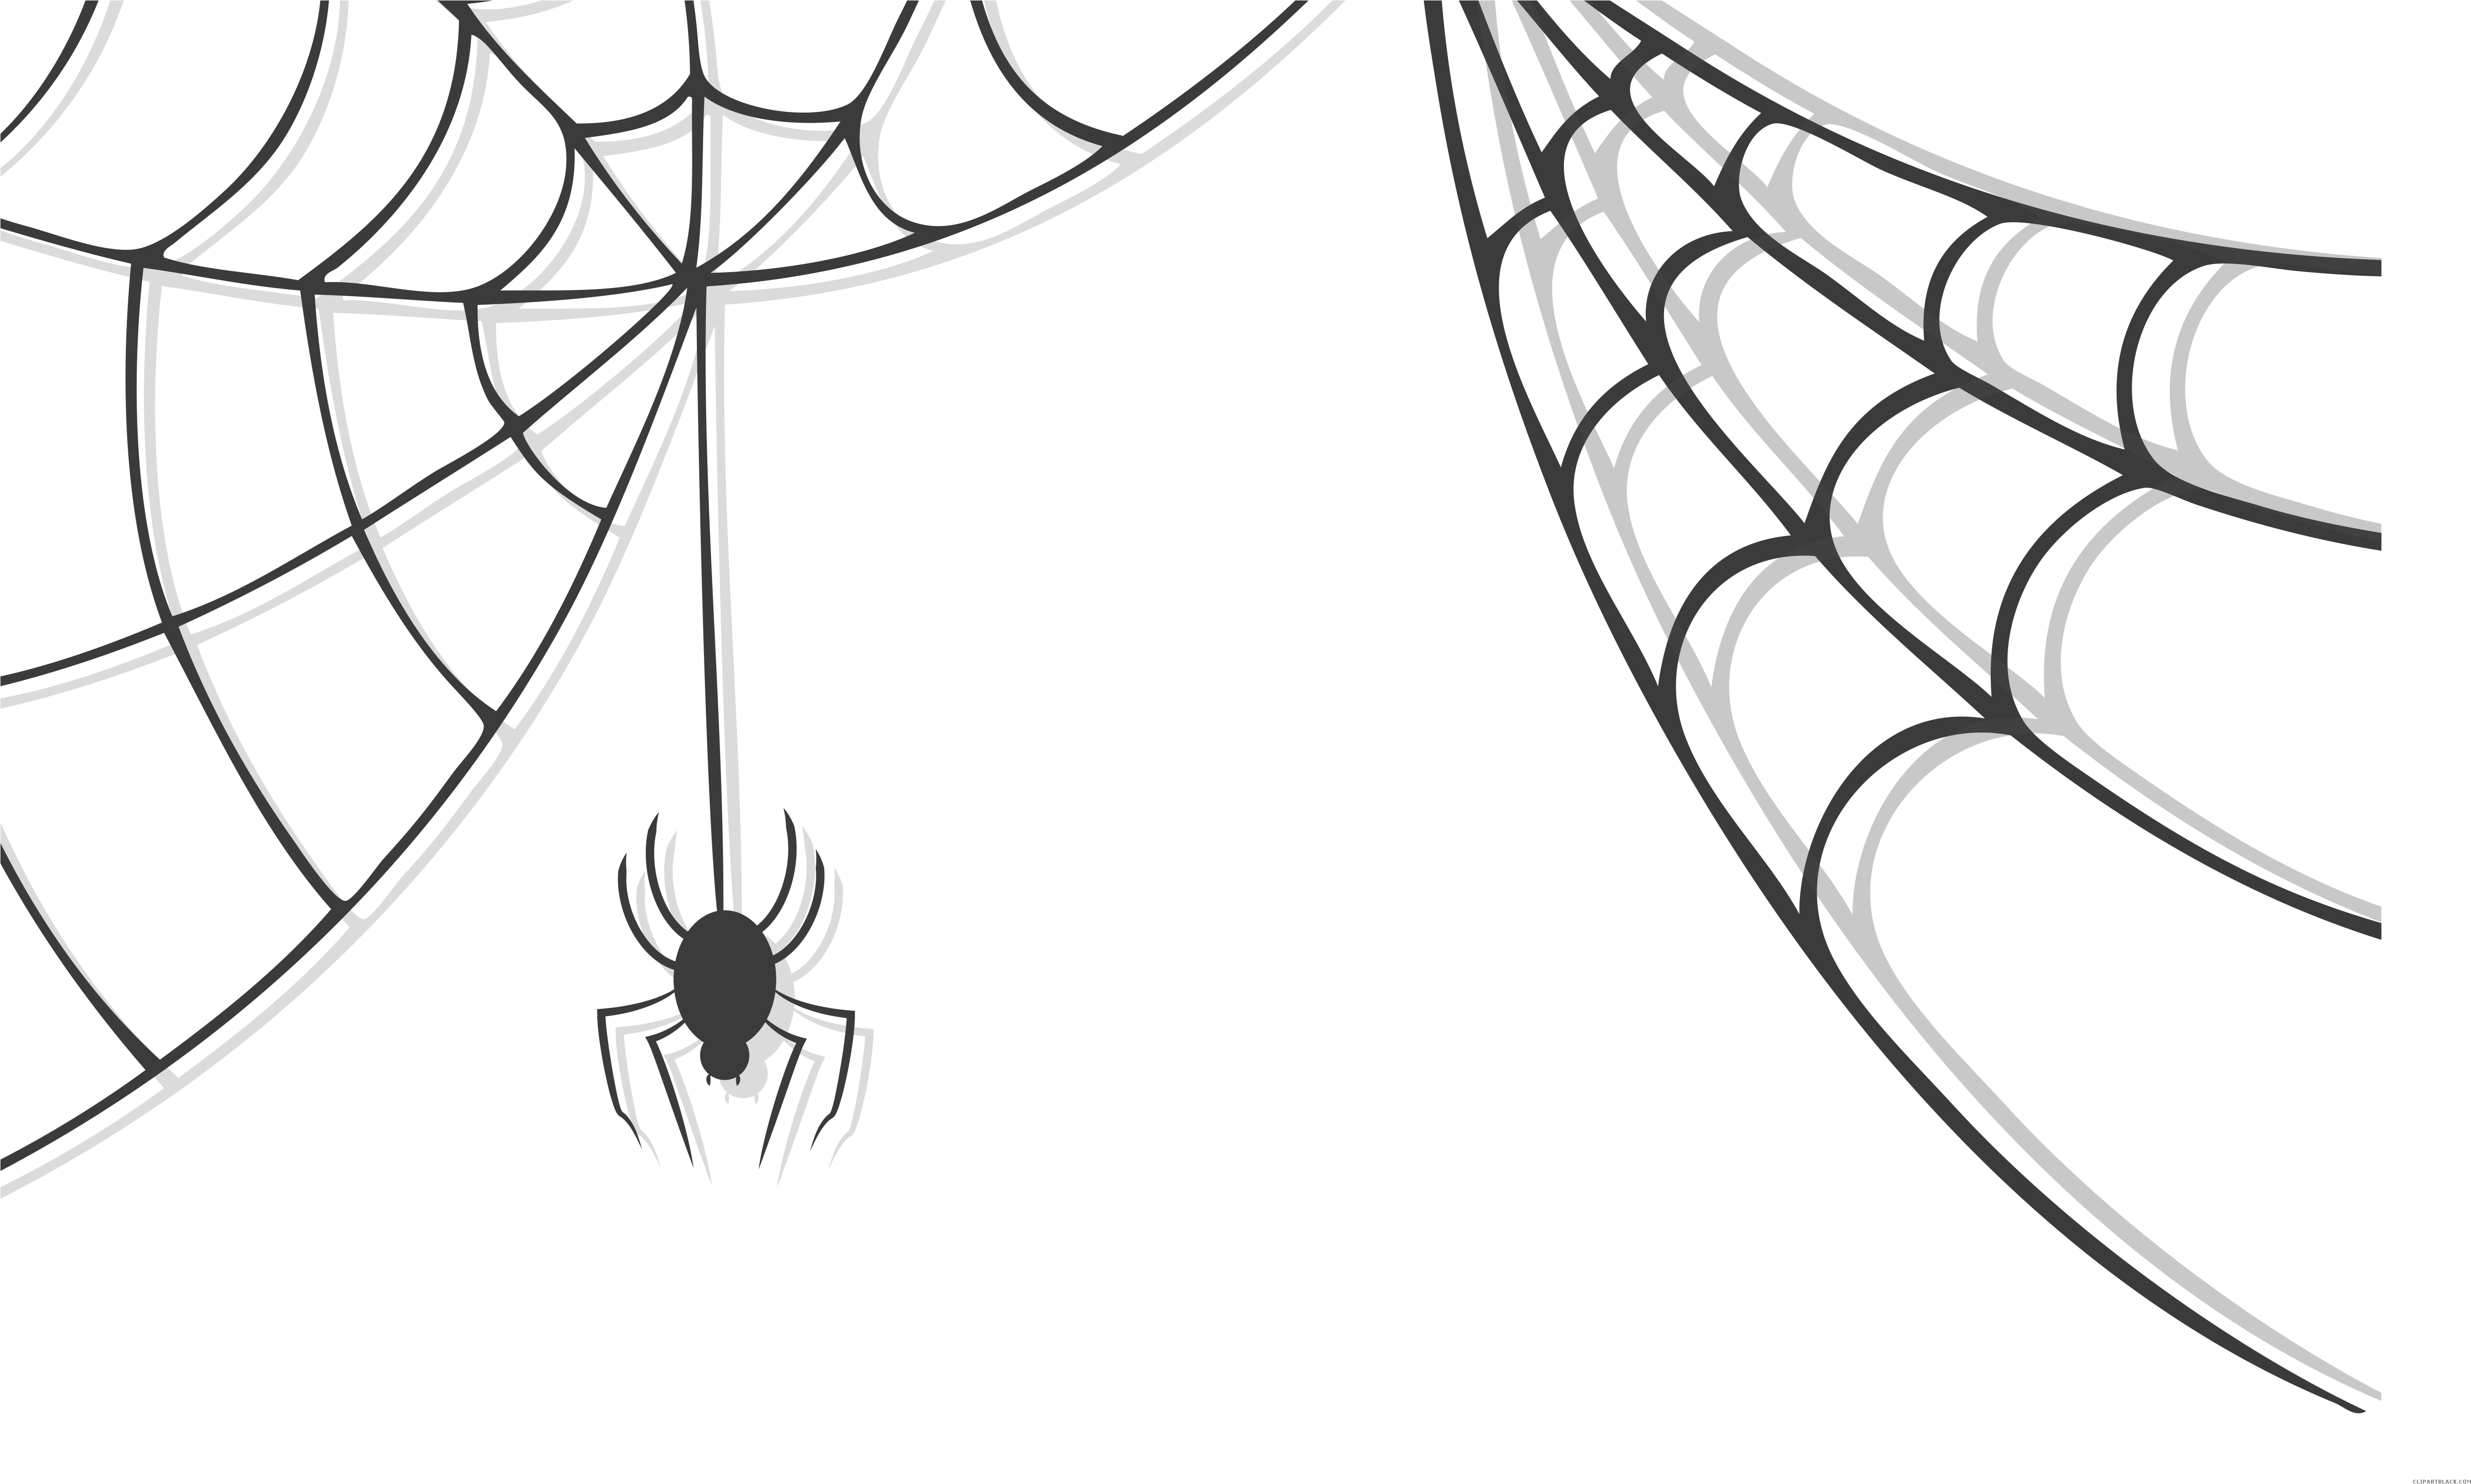 Drawing web spiter. Download hd cobwebs transparent